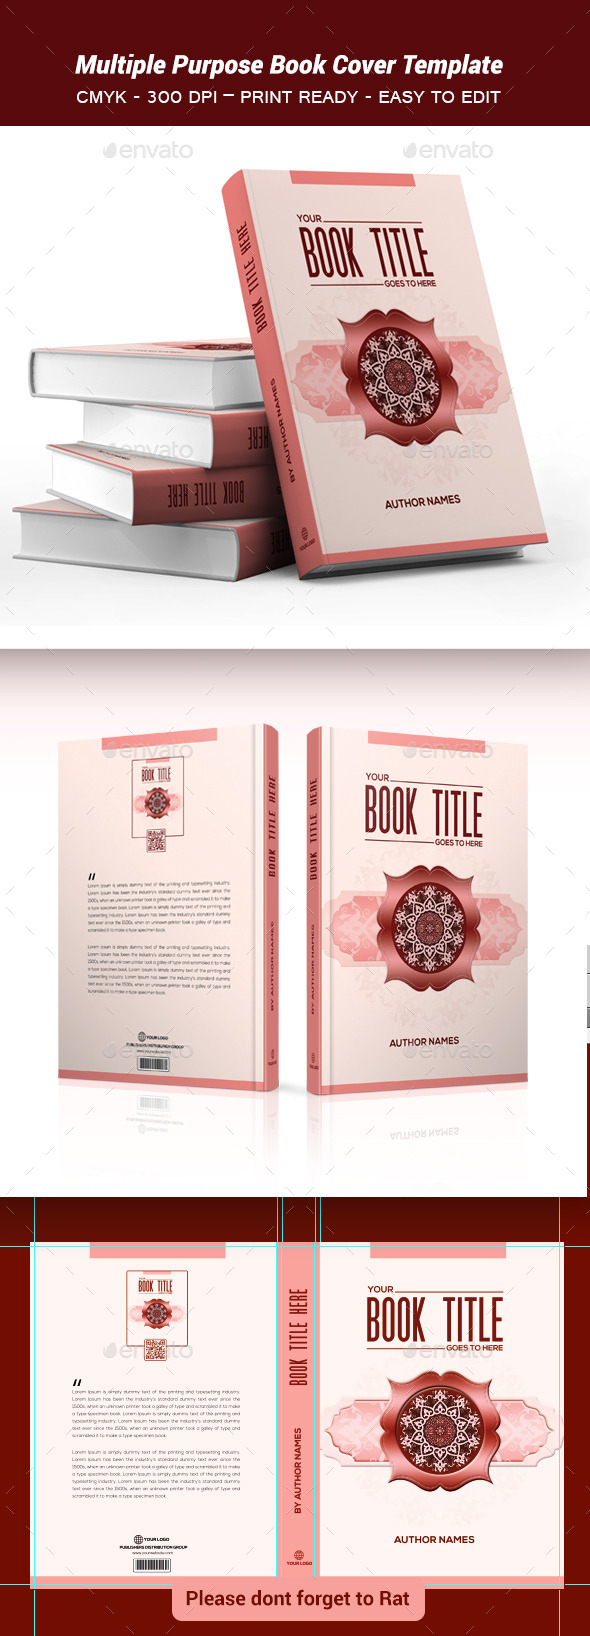 Multiple Purpose Book Cover Template2 - Print Templates